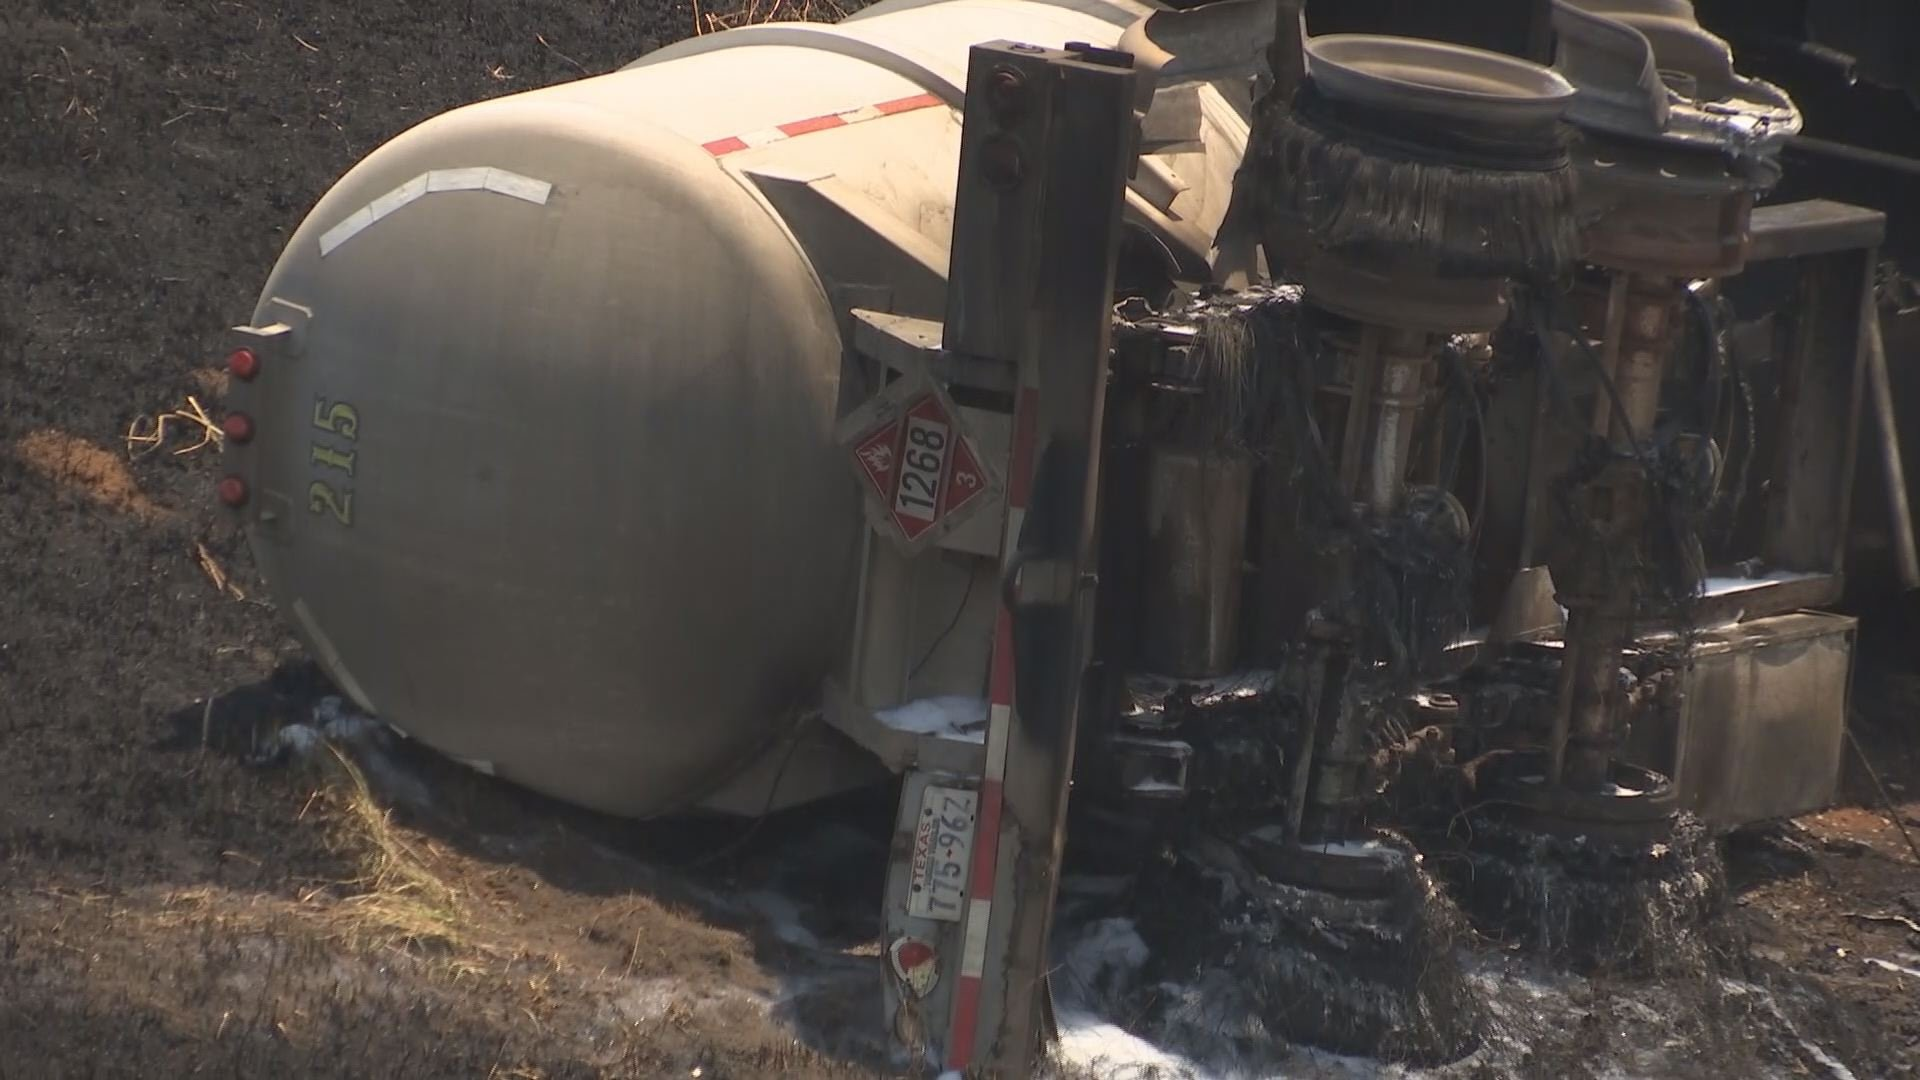 The back of the tanker truck involved in Monday's fiery crash on I-10 eastbound. (Franz Barraza, WALA)